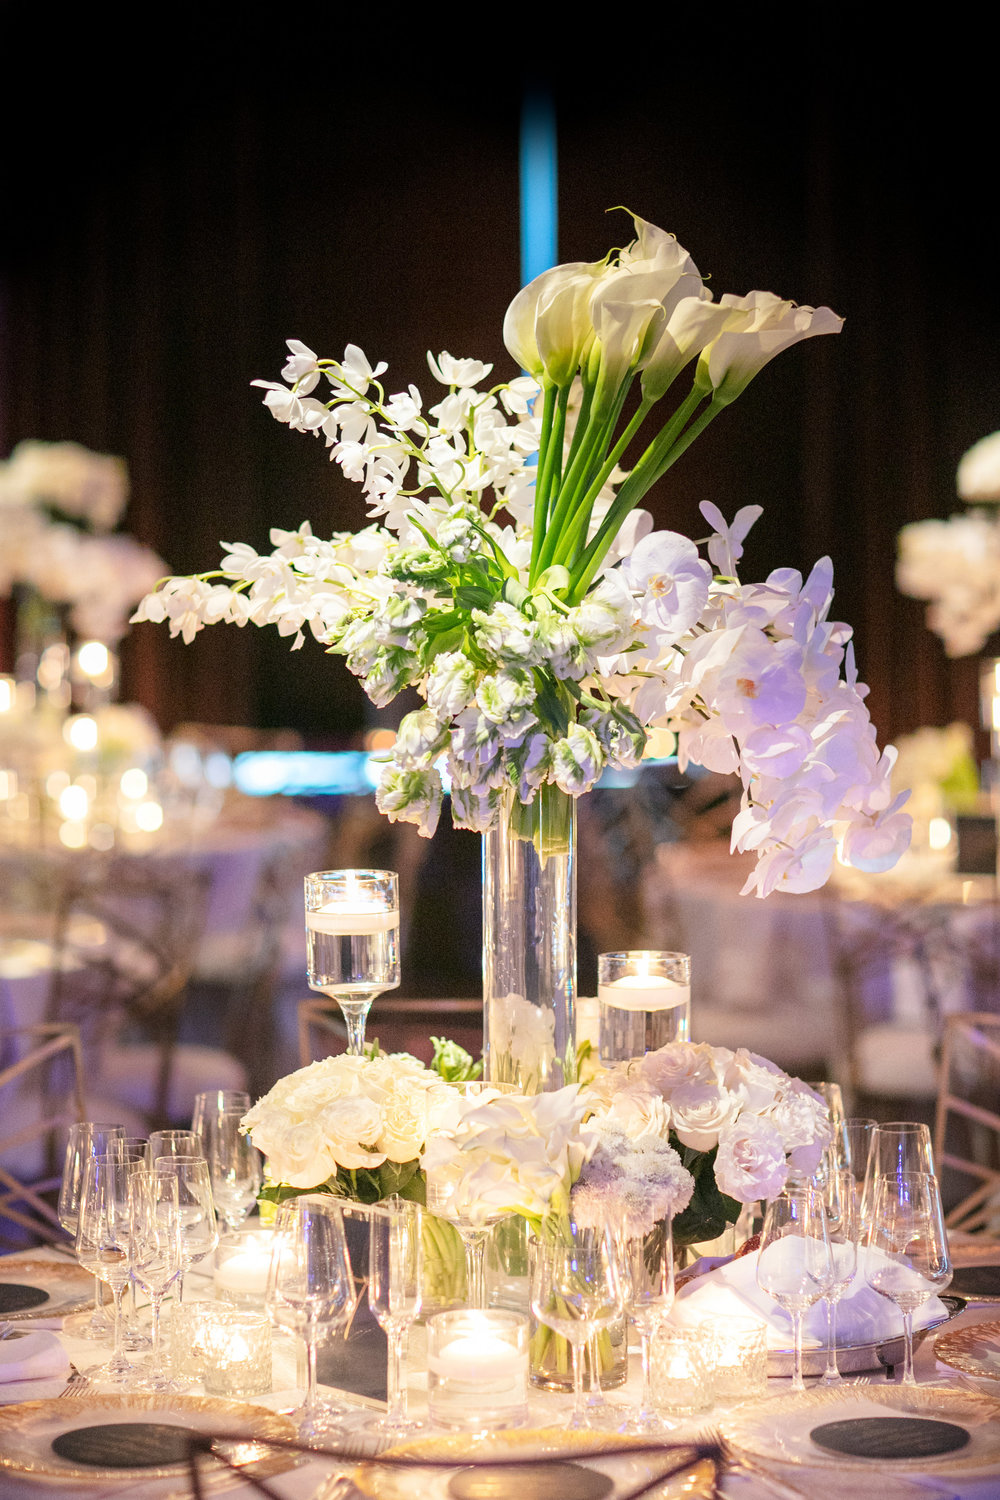 Andrea-Freeman-Events-NY-Wedding-Planner-Mandarin-Oriental-Wedding-10.jpg